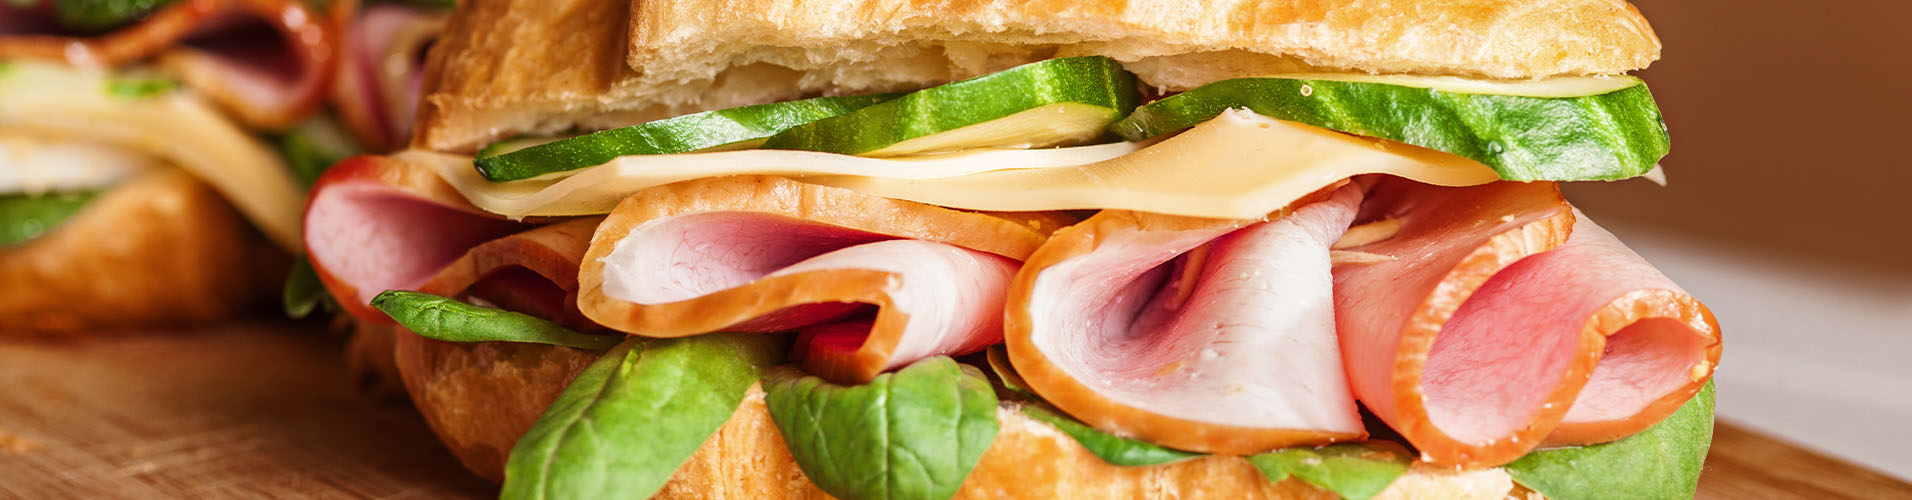 hot or cold sandwiches